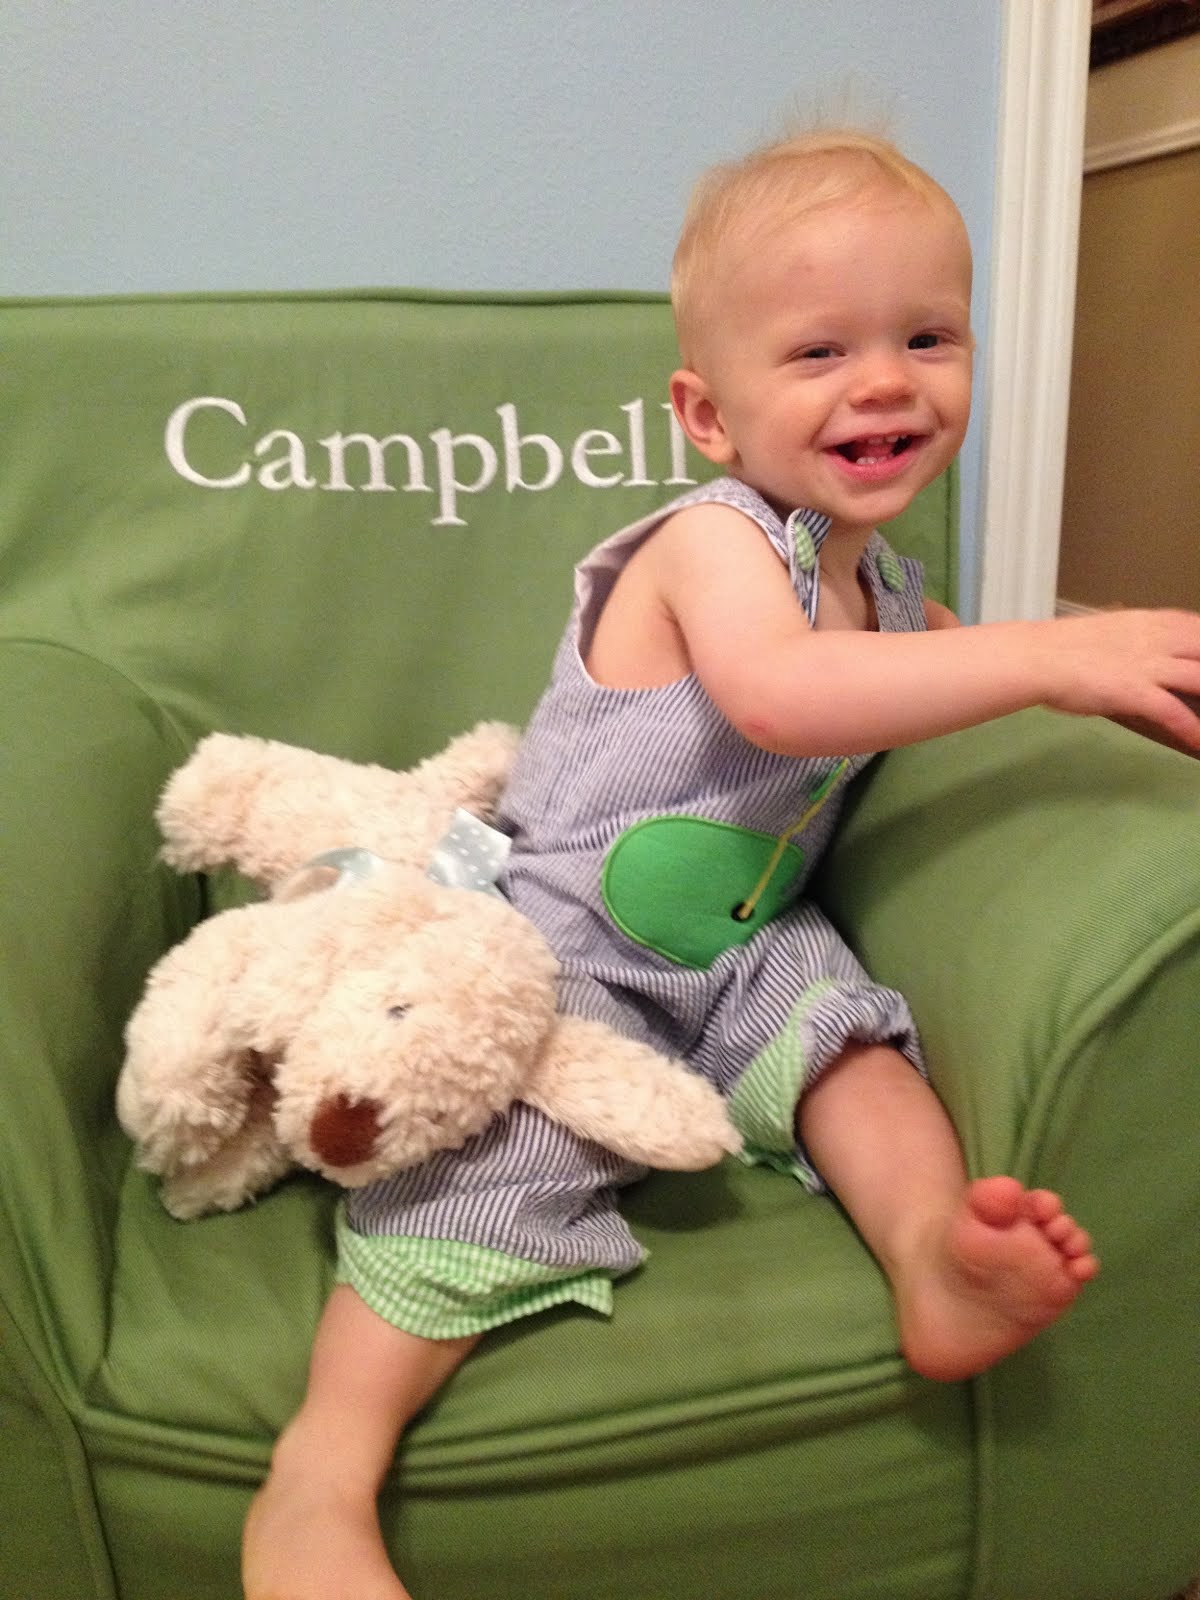 Campbell at 12 months